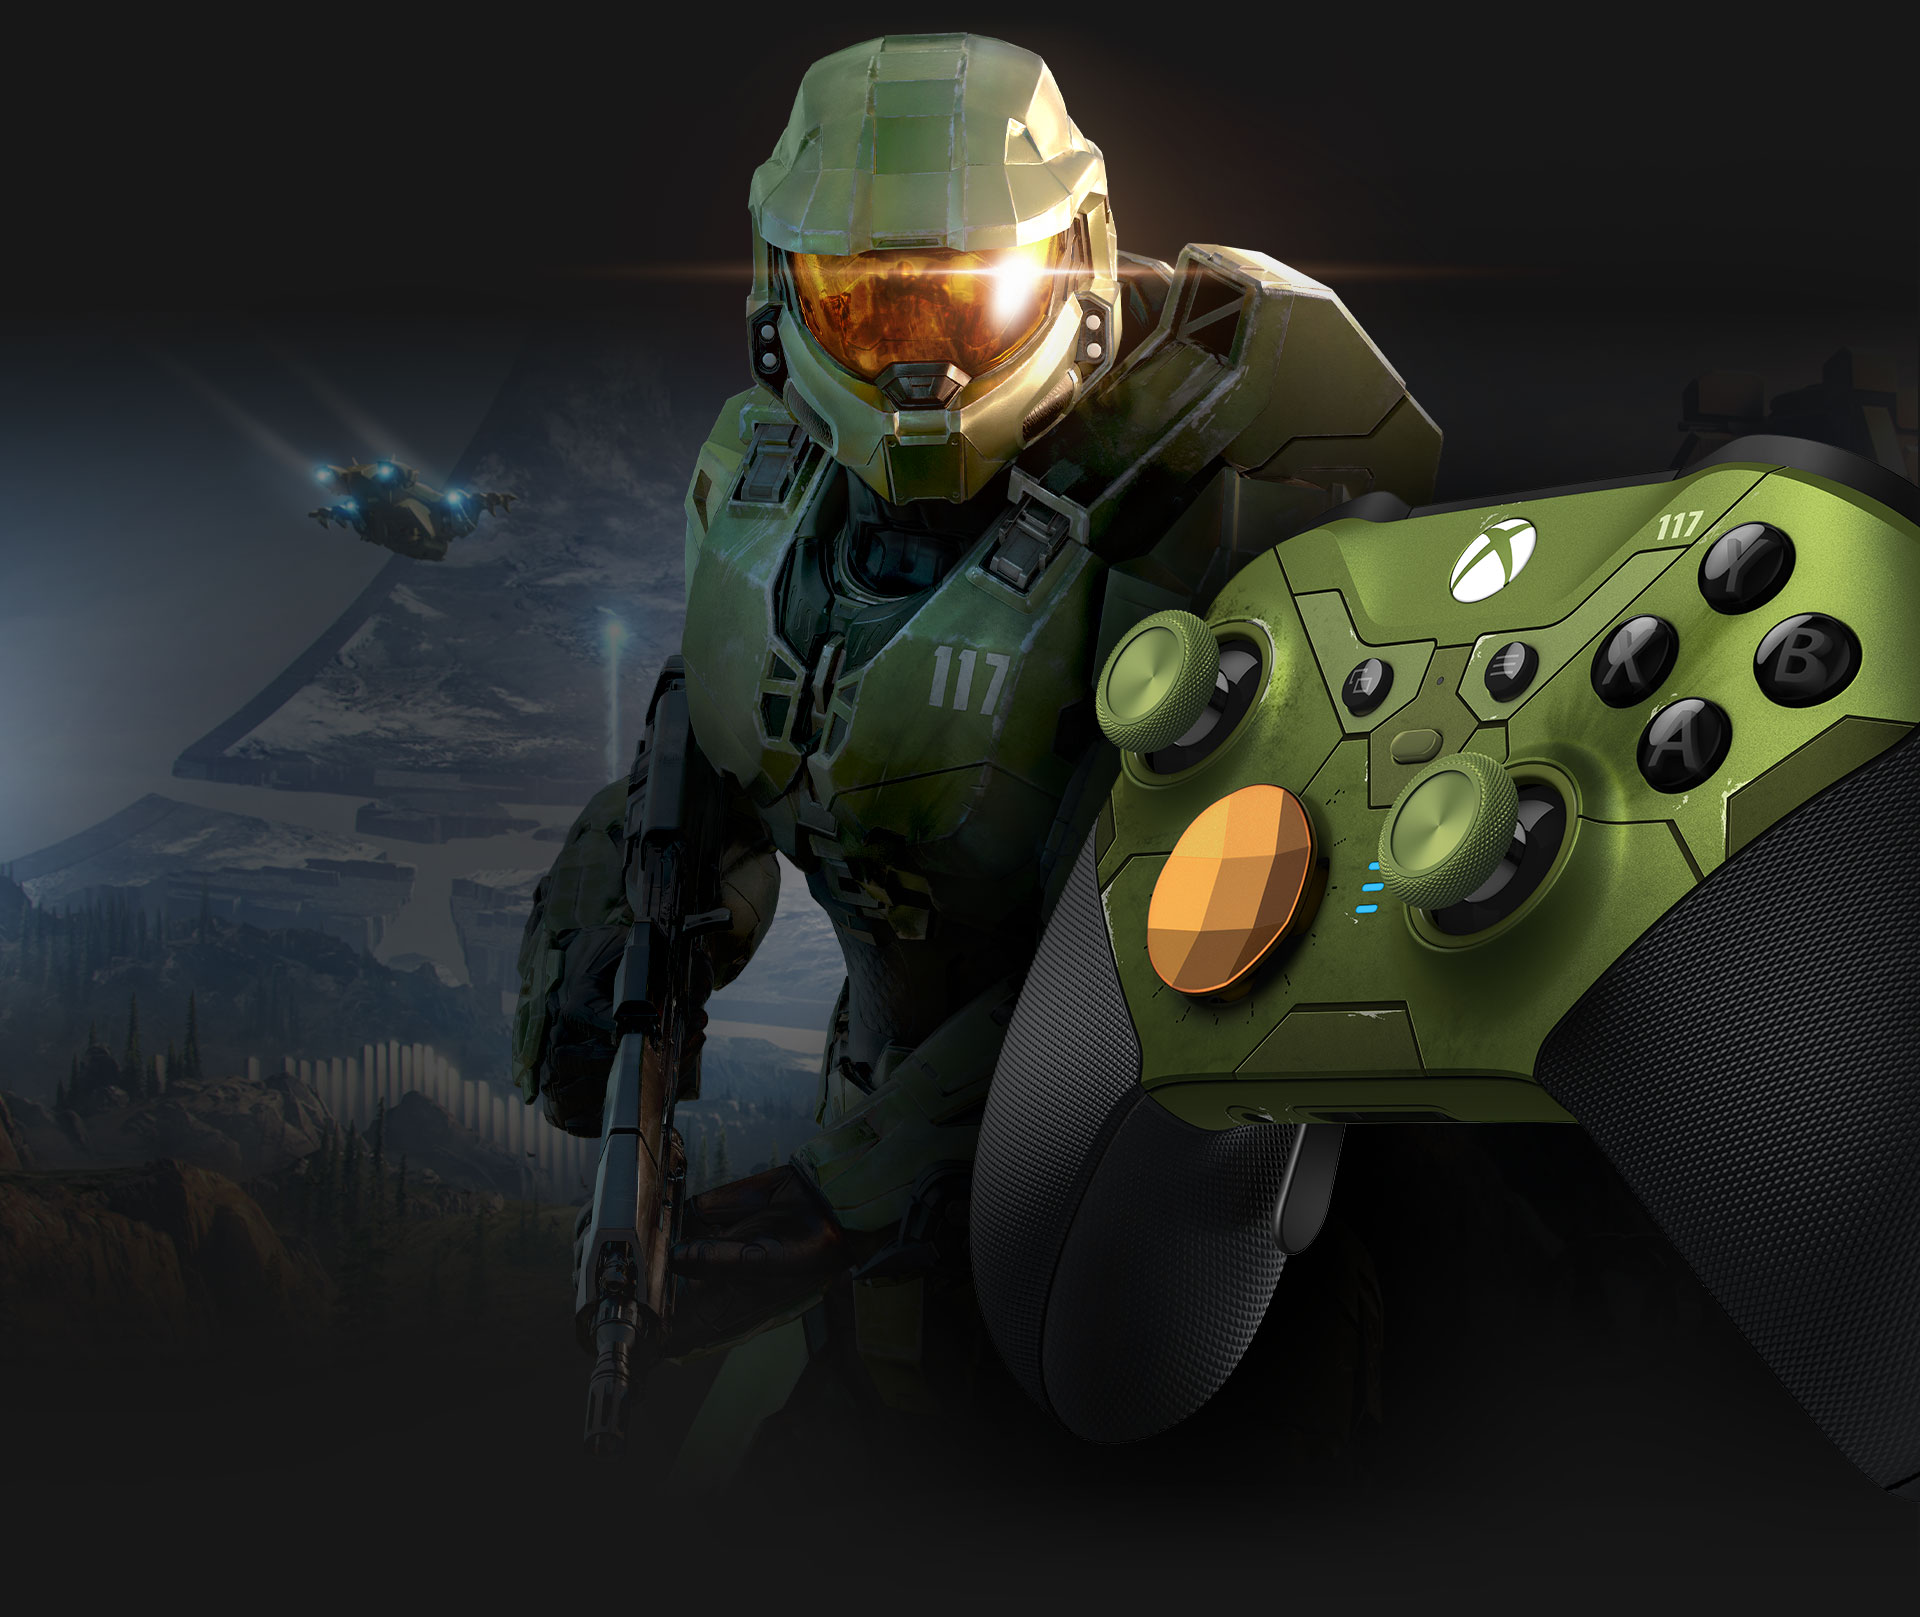 Left angle of Xbox Elite Wireless controller series 2 Halo Infinite with Master Chief